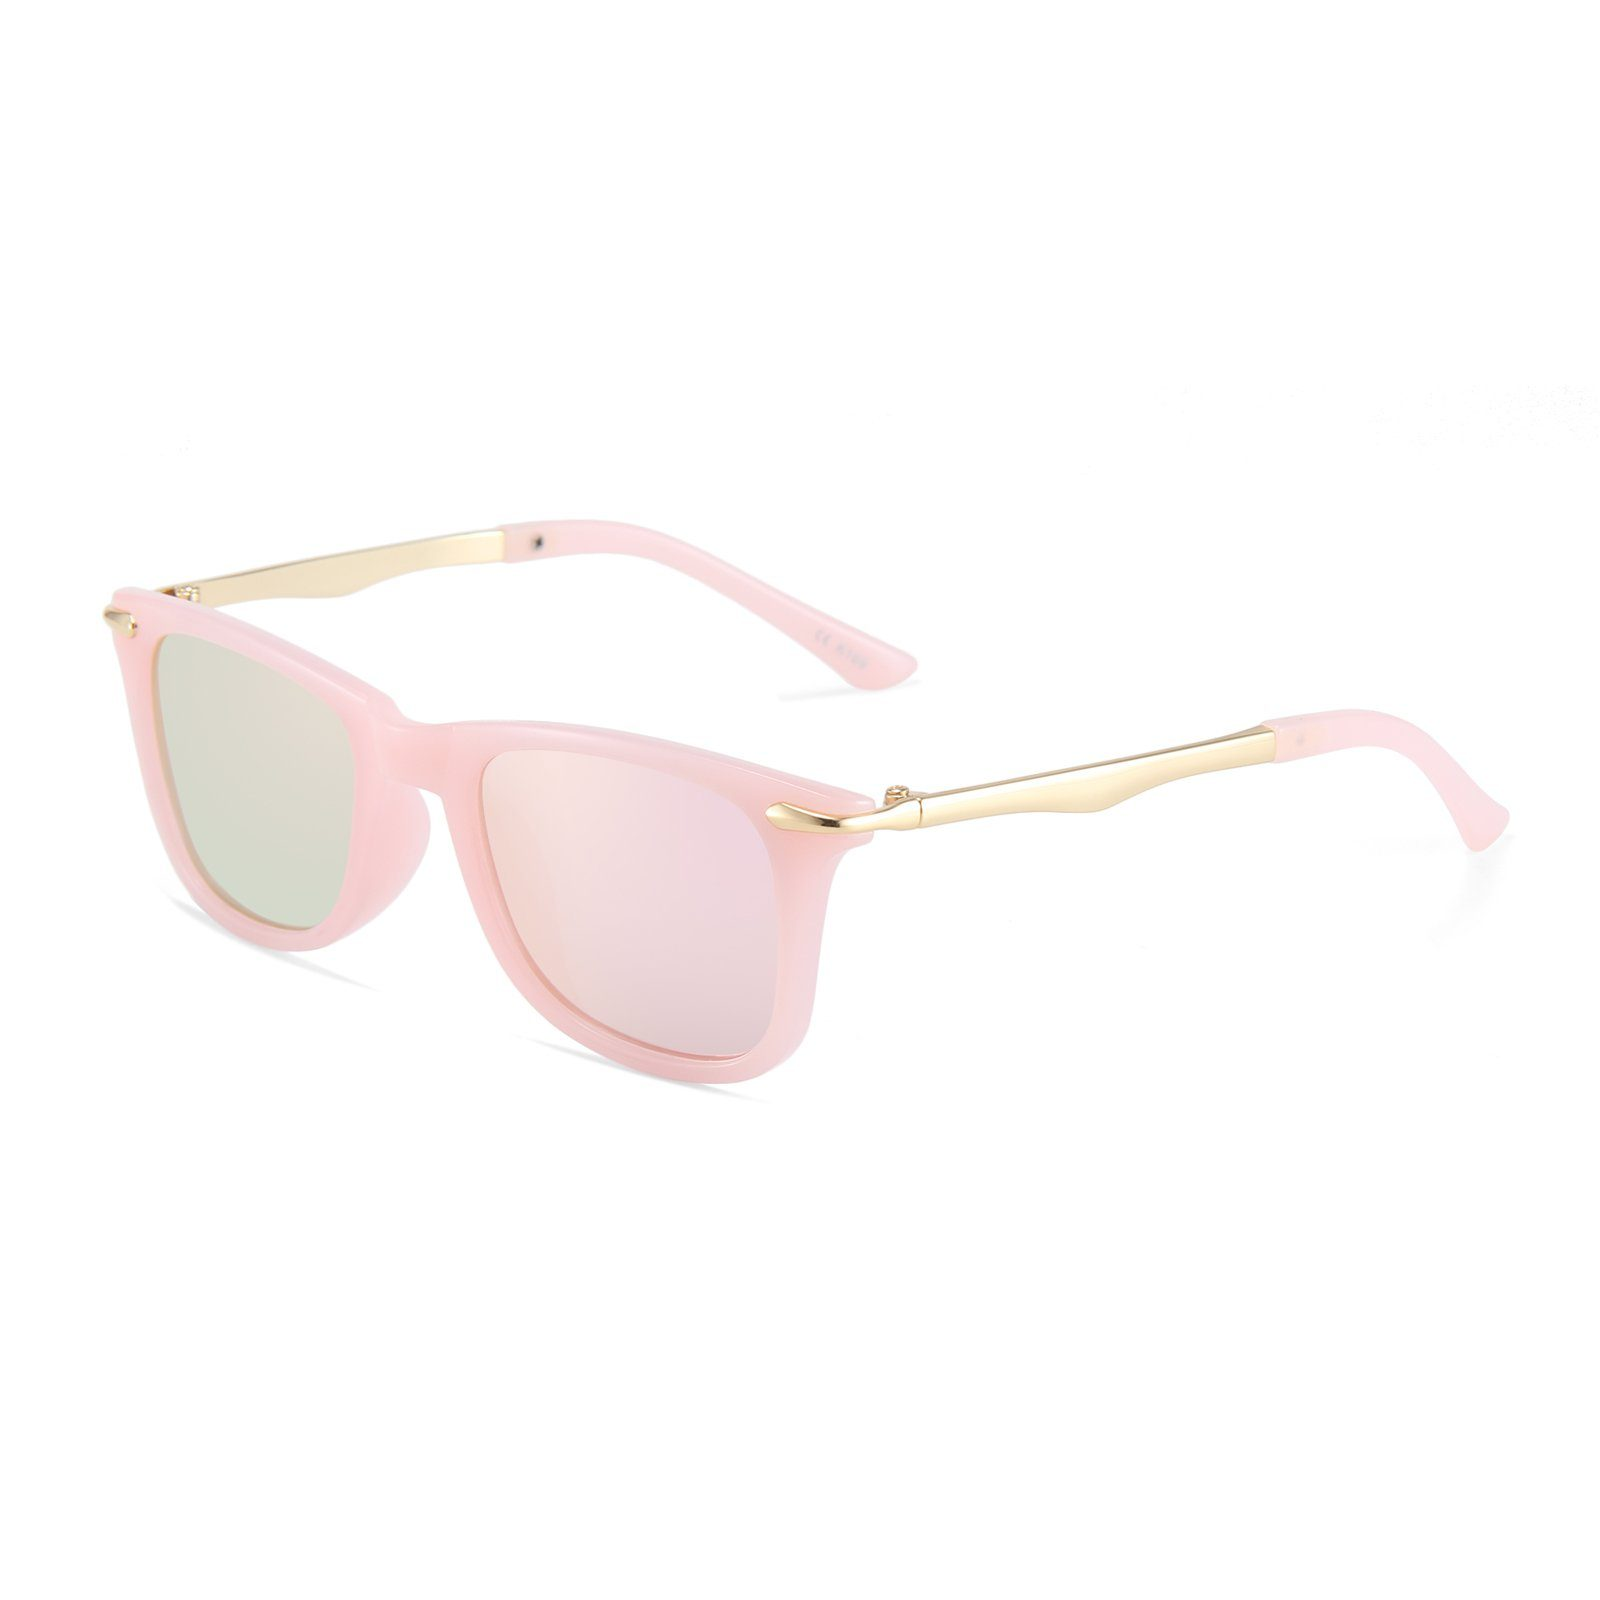 Classic Metallic Sunglasses (Pink)